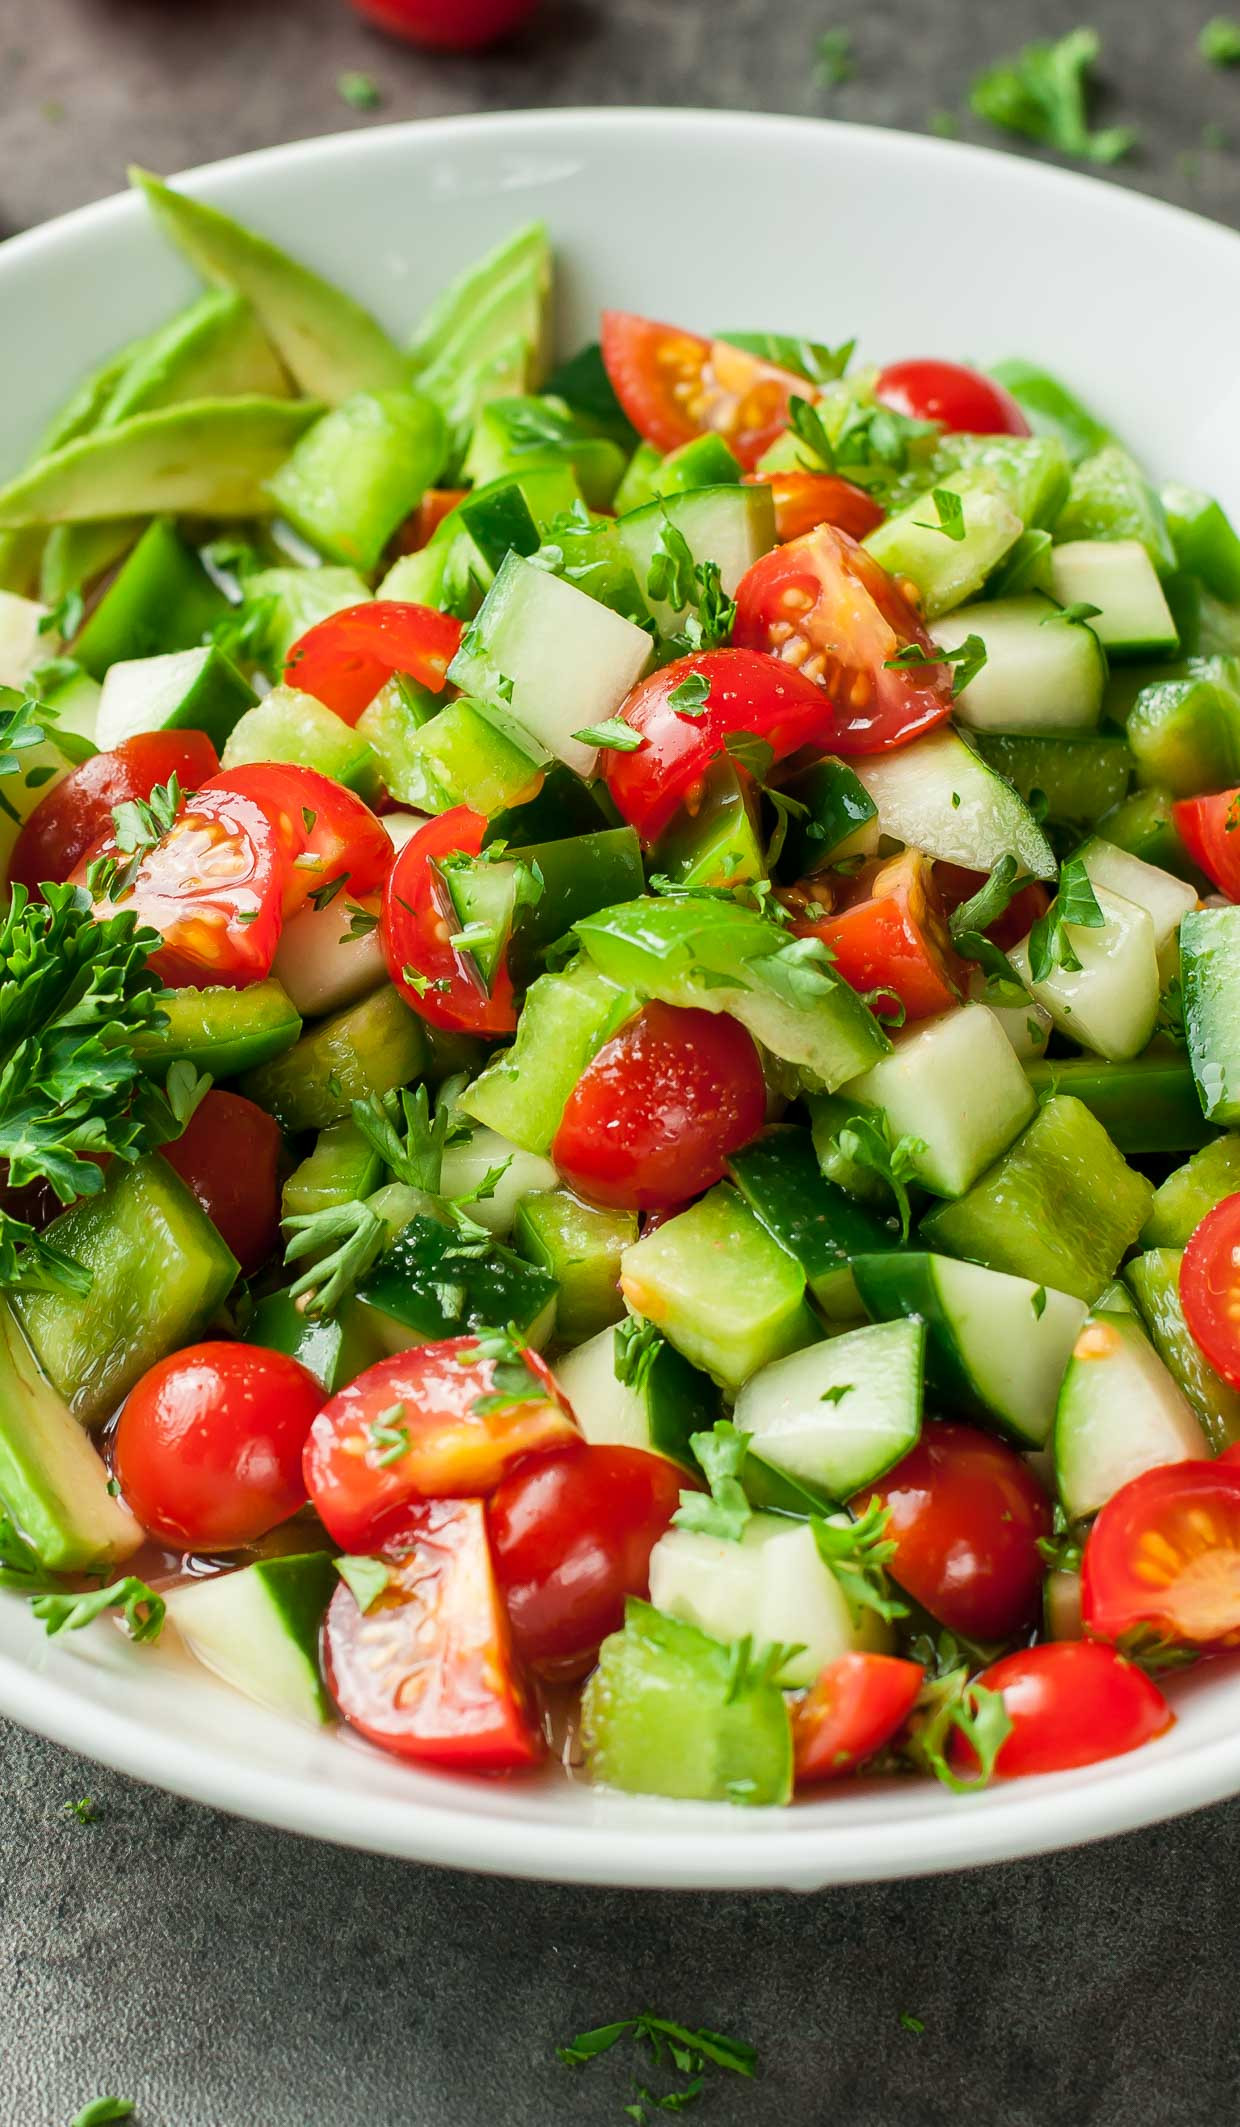 Healthy Avocado Recipes  12 Tasty Recipes to Step Up Your Salad Game Peas And Crayons